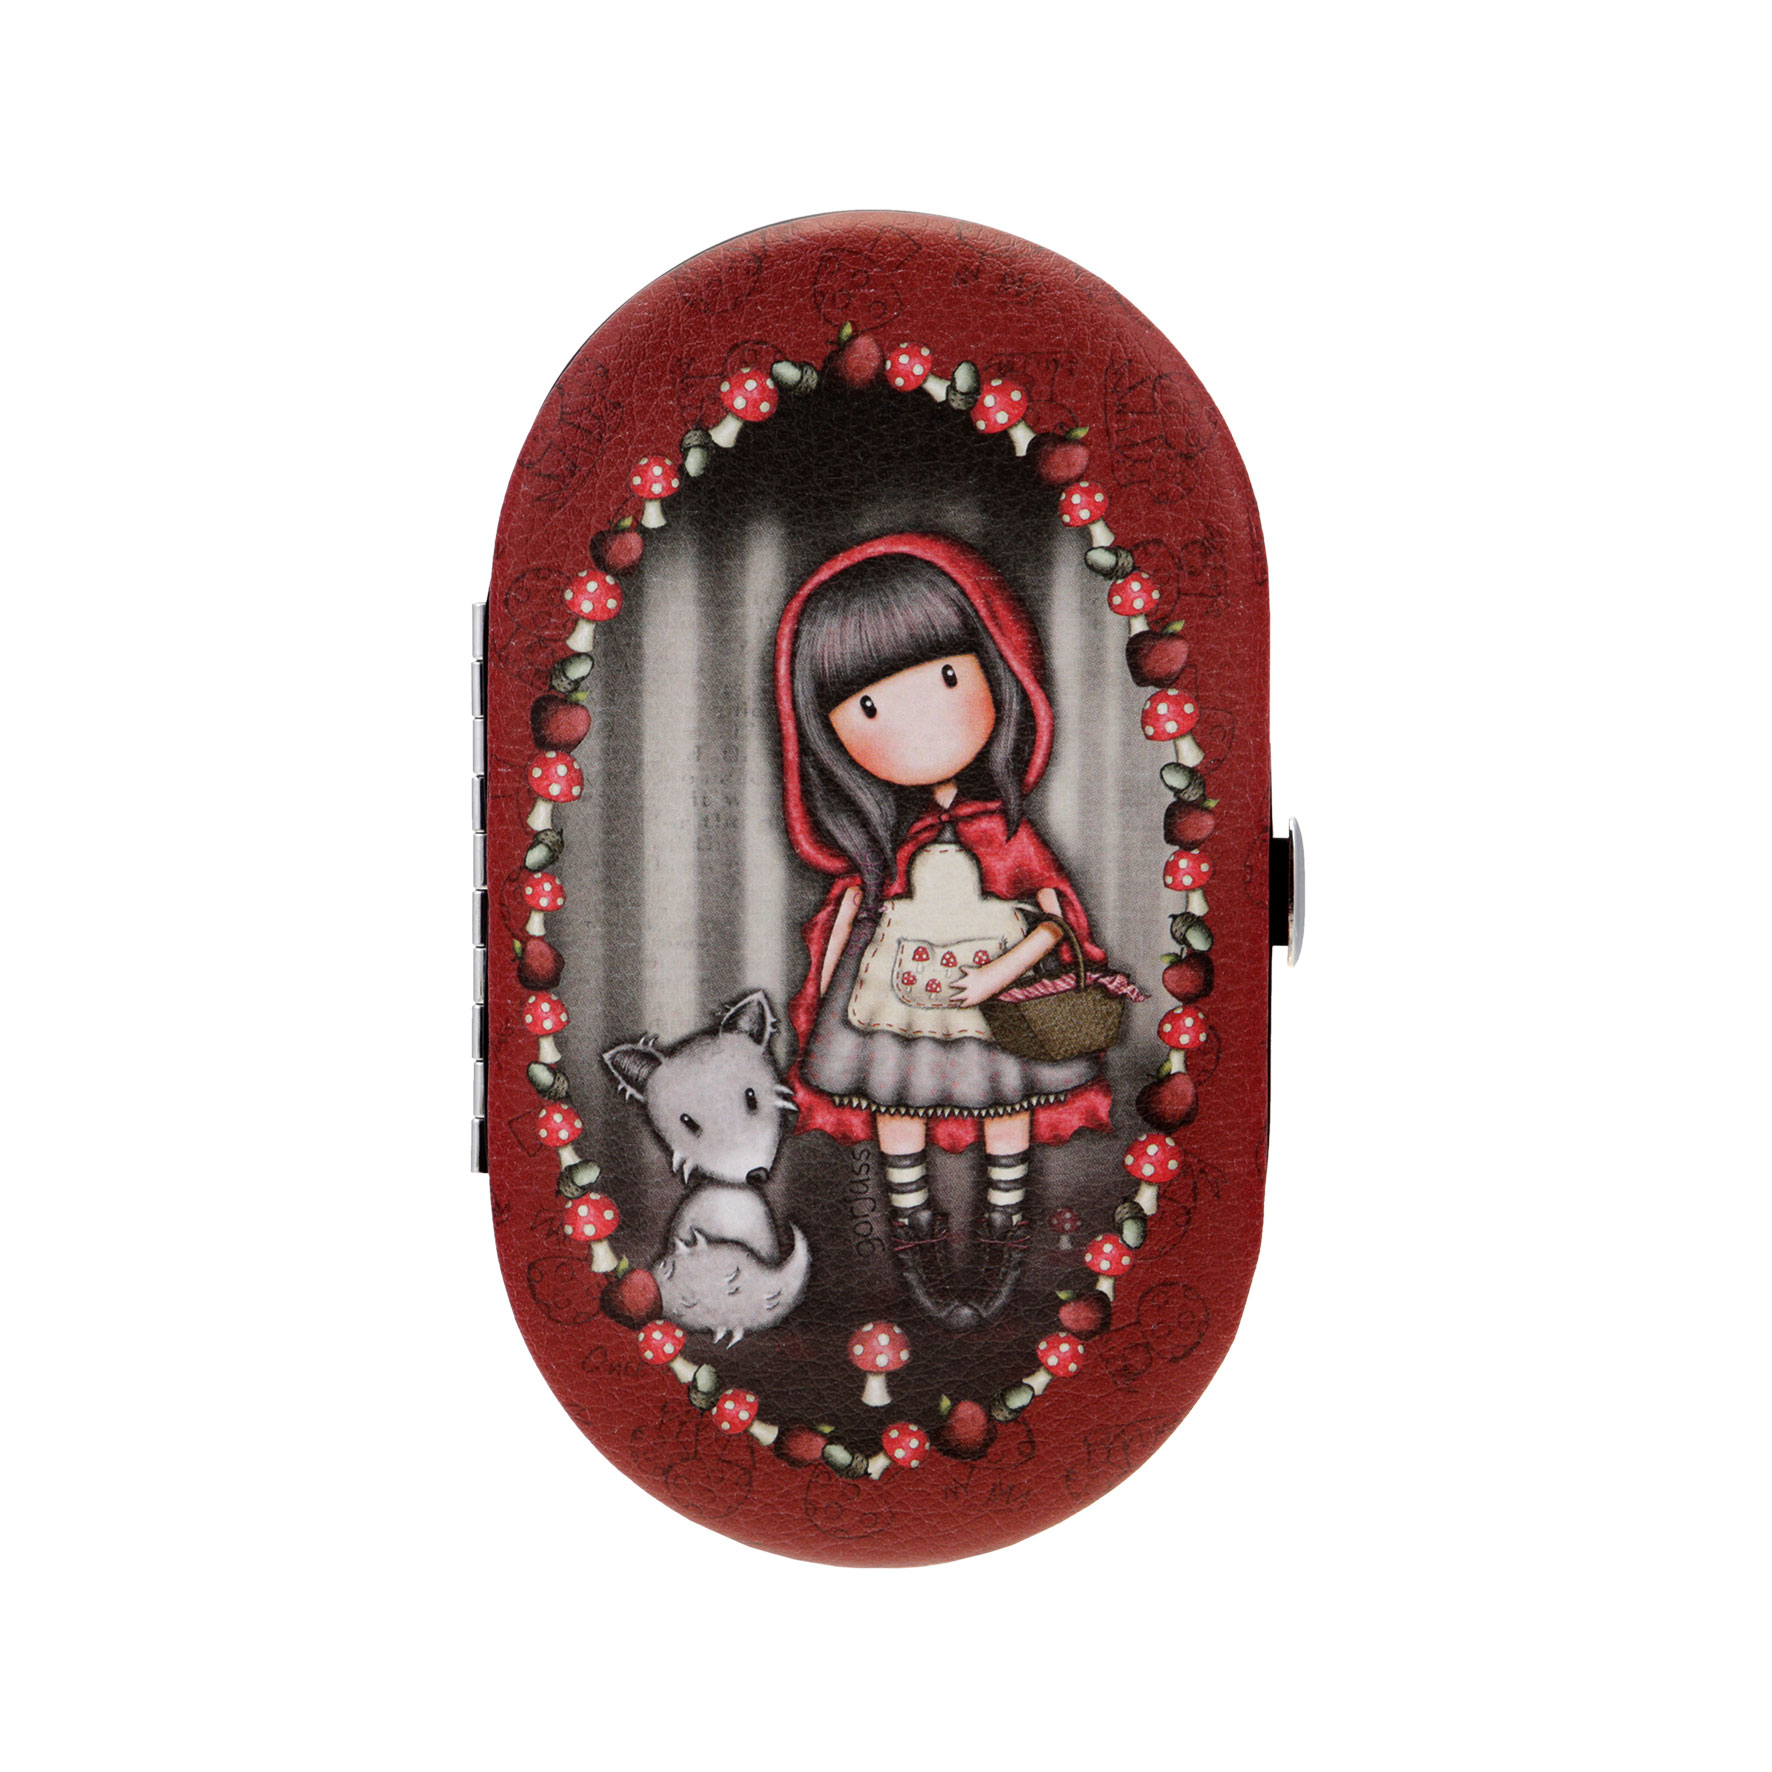 "Manikúra ""Little Red Riding Hood"" od firmy SANTORO Gorjuss"